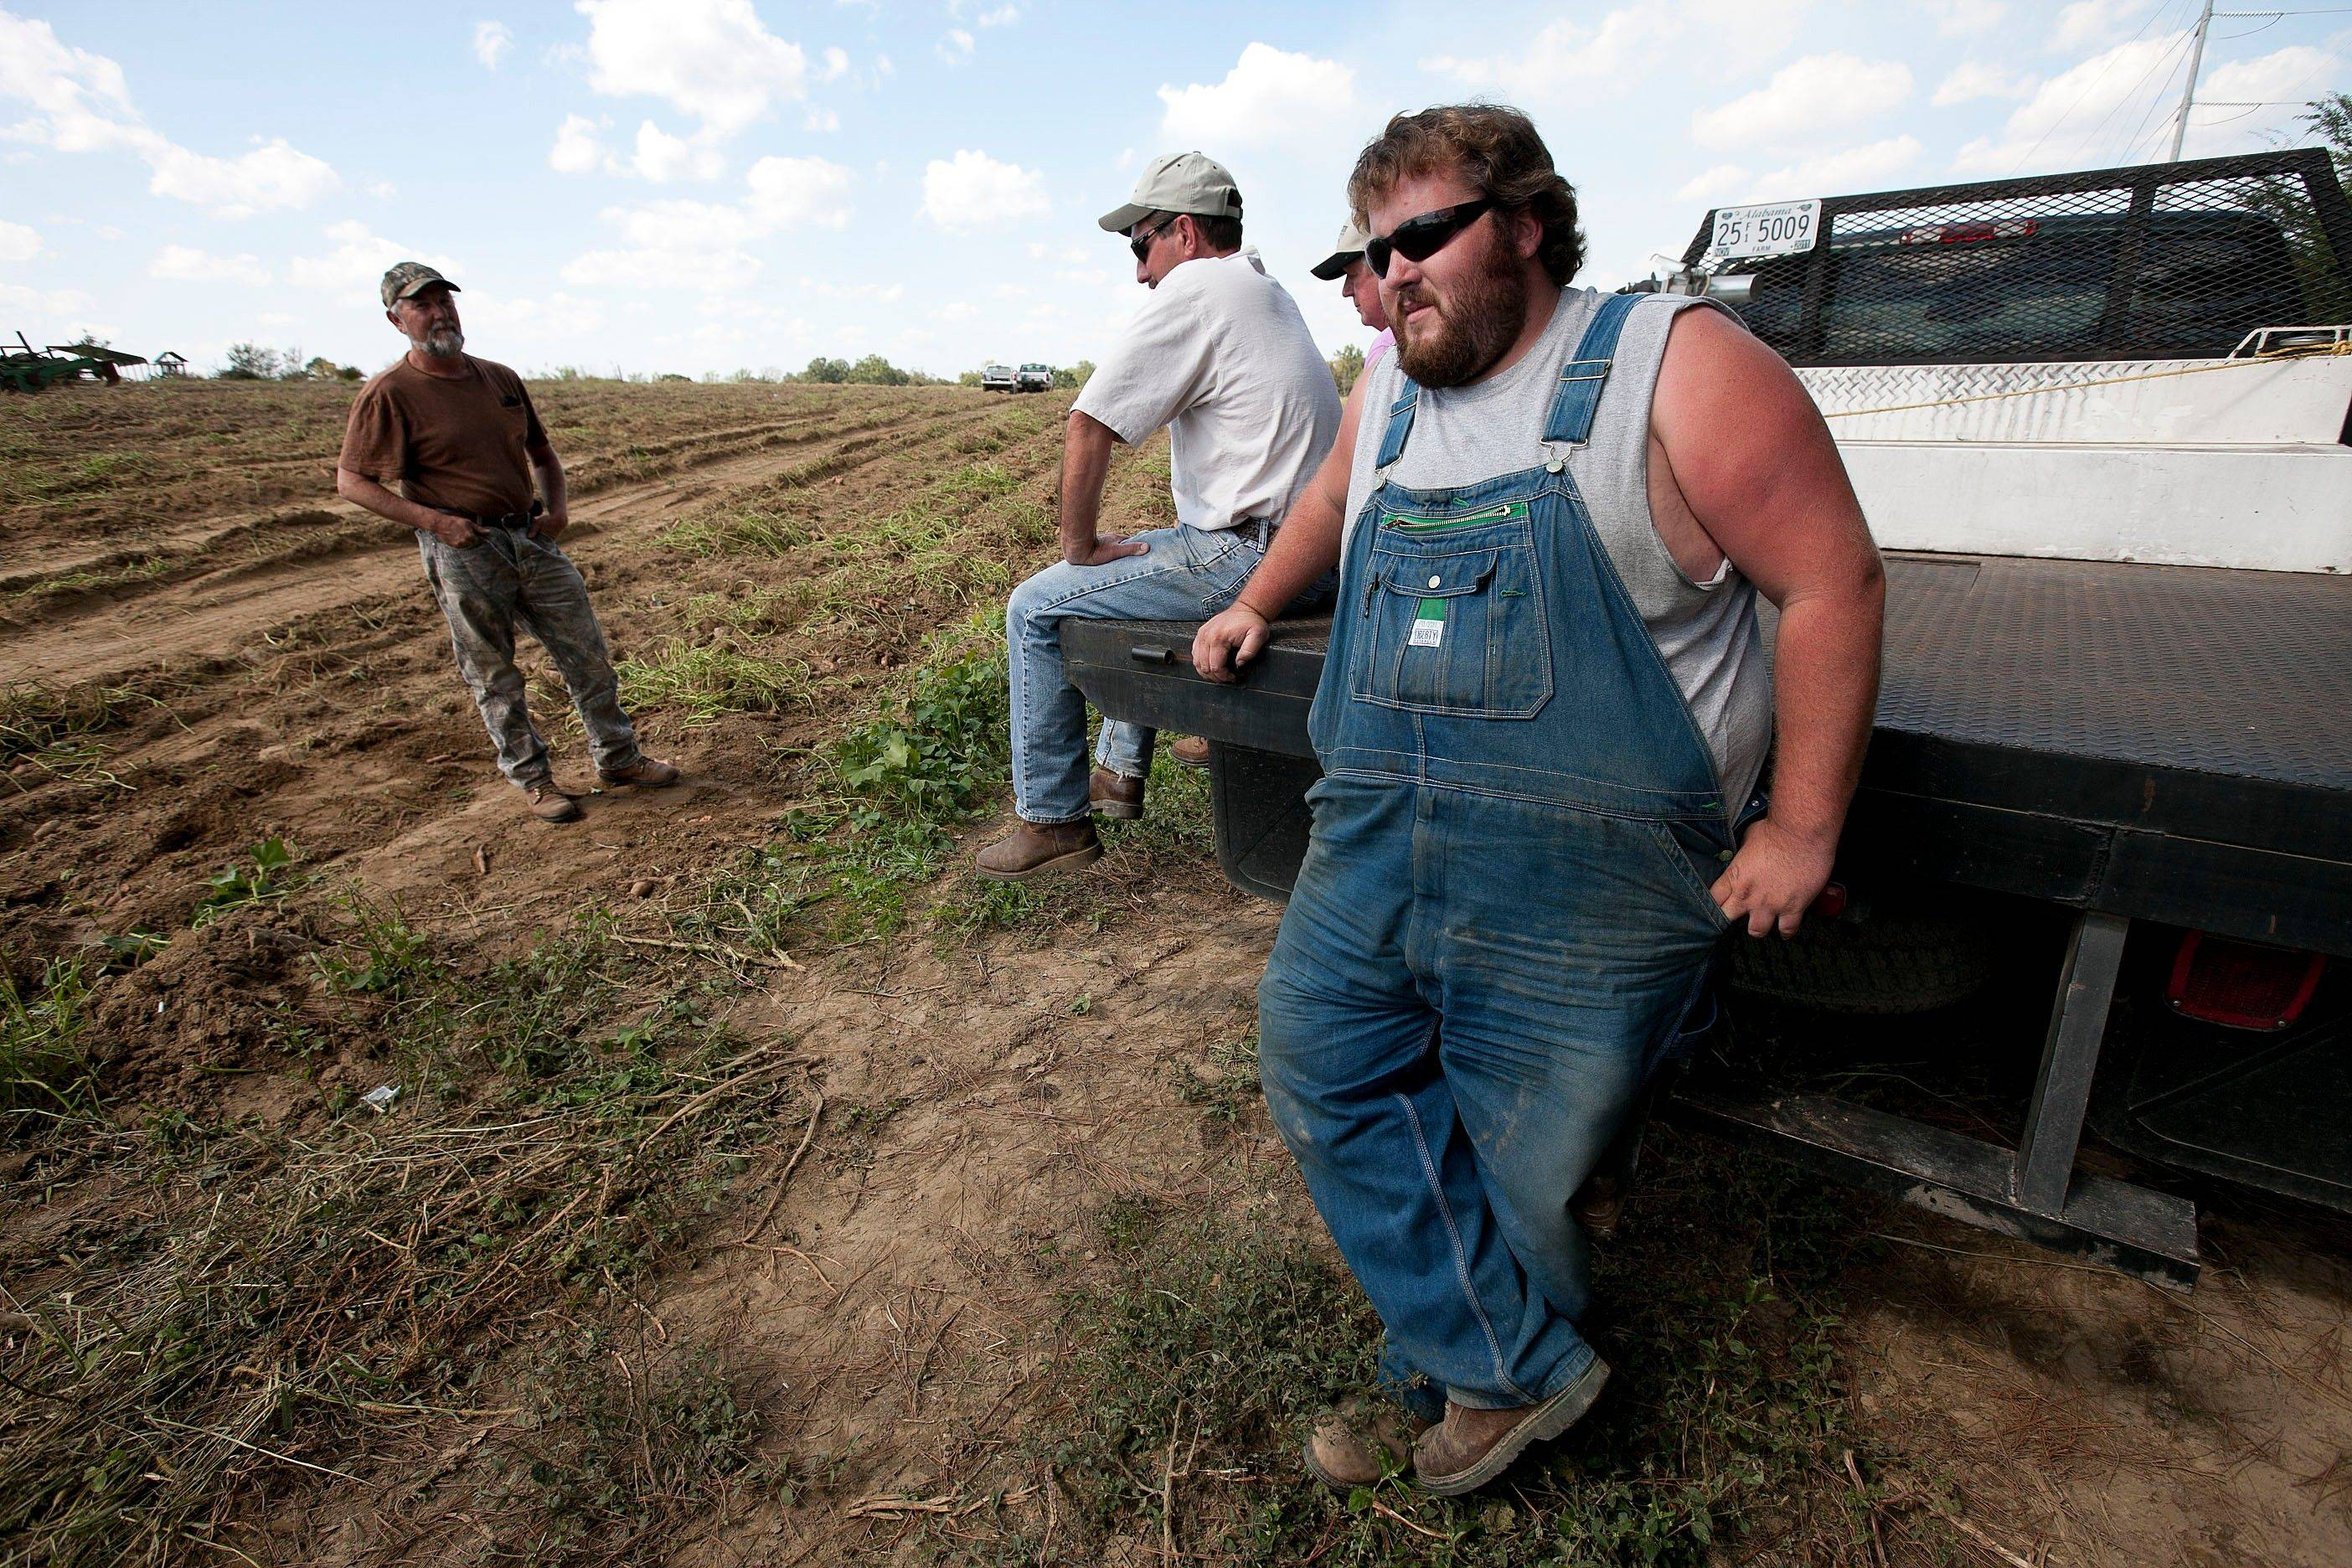 In September, sweet potato farmer Casey Smith, right, looks at a nearly empty sweet potato field that needs cultivating on his father's farm in Cullman, Ala. Normally, Smith hires some 25 laborers to help bring in his crop. Only five workers showed up on the day that Alabama's stringent immigration law took effect. A coalition of immigrant support groups has asked a federal appeals court to block enforcement of Alabama's new immigration law. The coalition said it filed the petition to the 11th U.S. Circuit Court of Appeals in Atlanta several hours after the federal government filed its challenge.